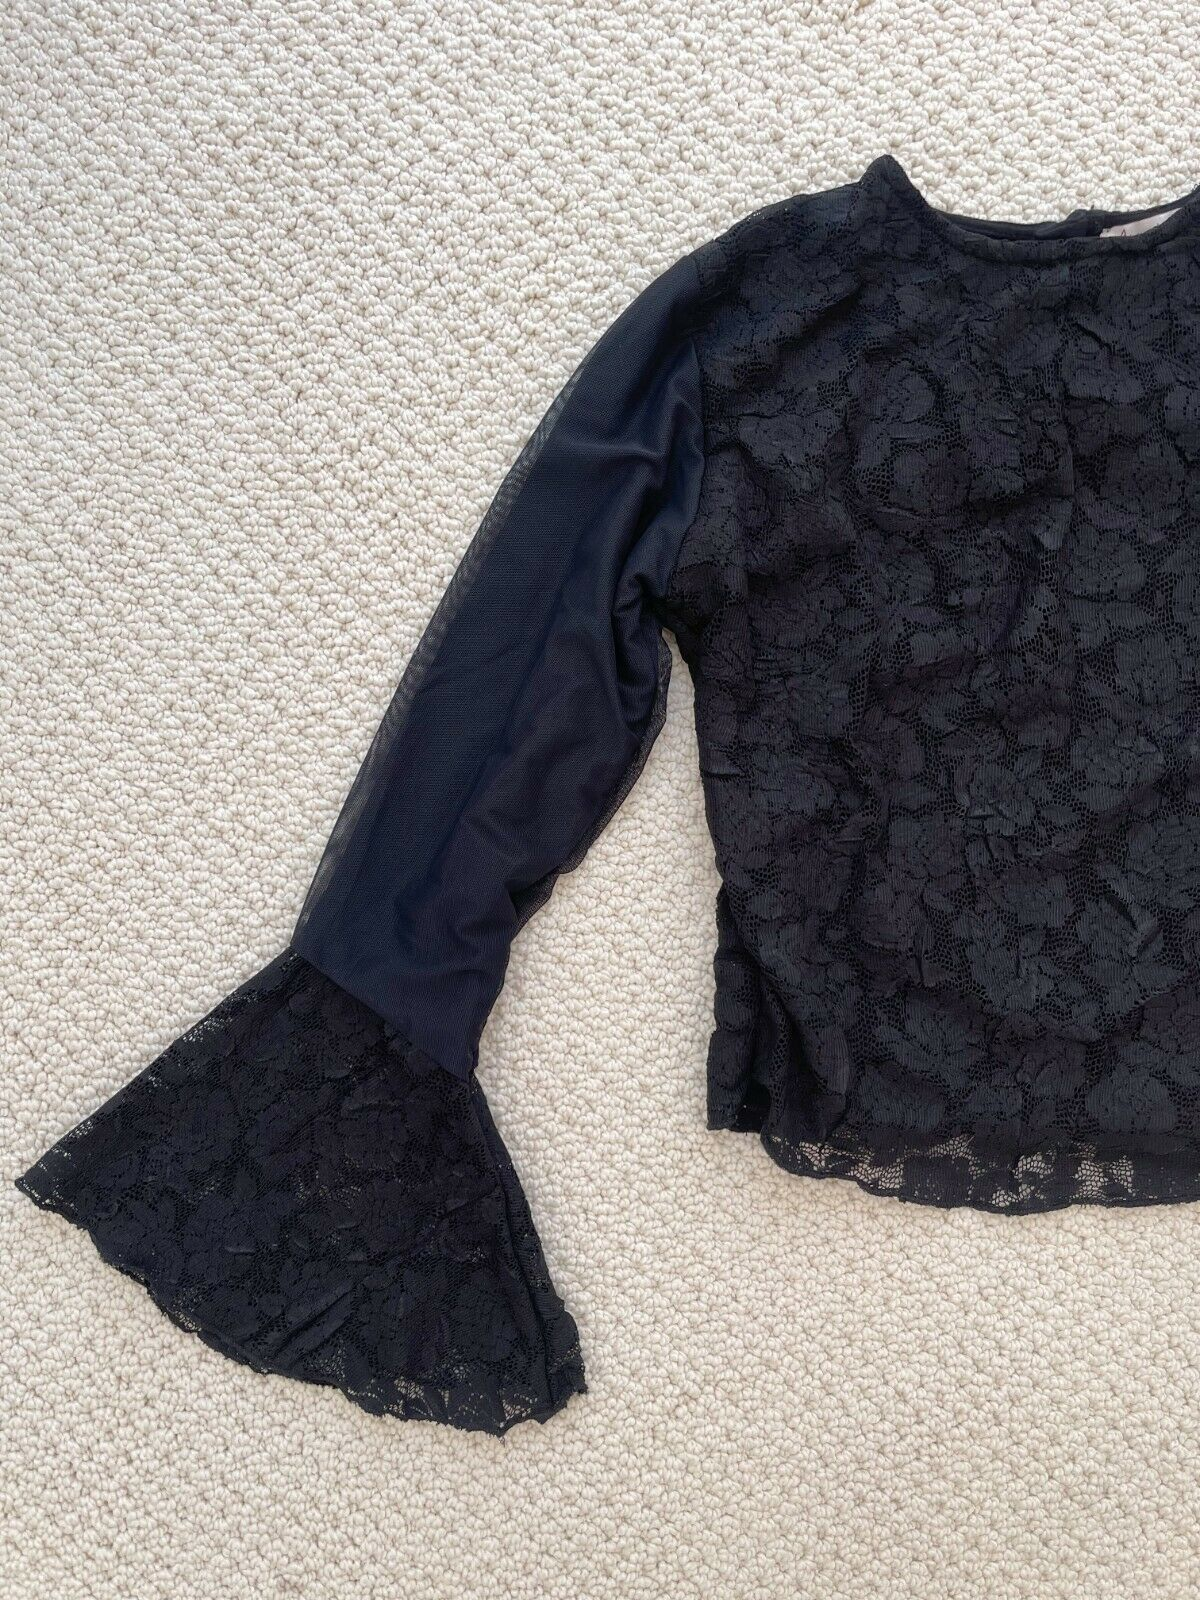 ANNA MEYER Paris Black Lace Blouse Top with Flare… - image 2